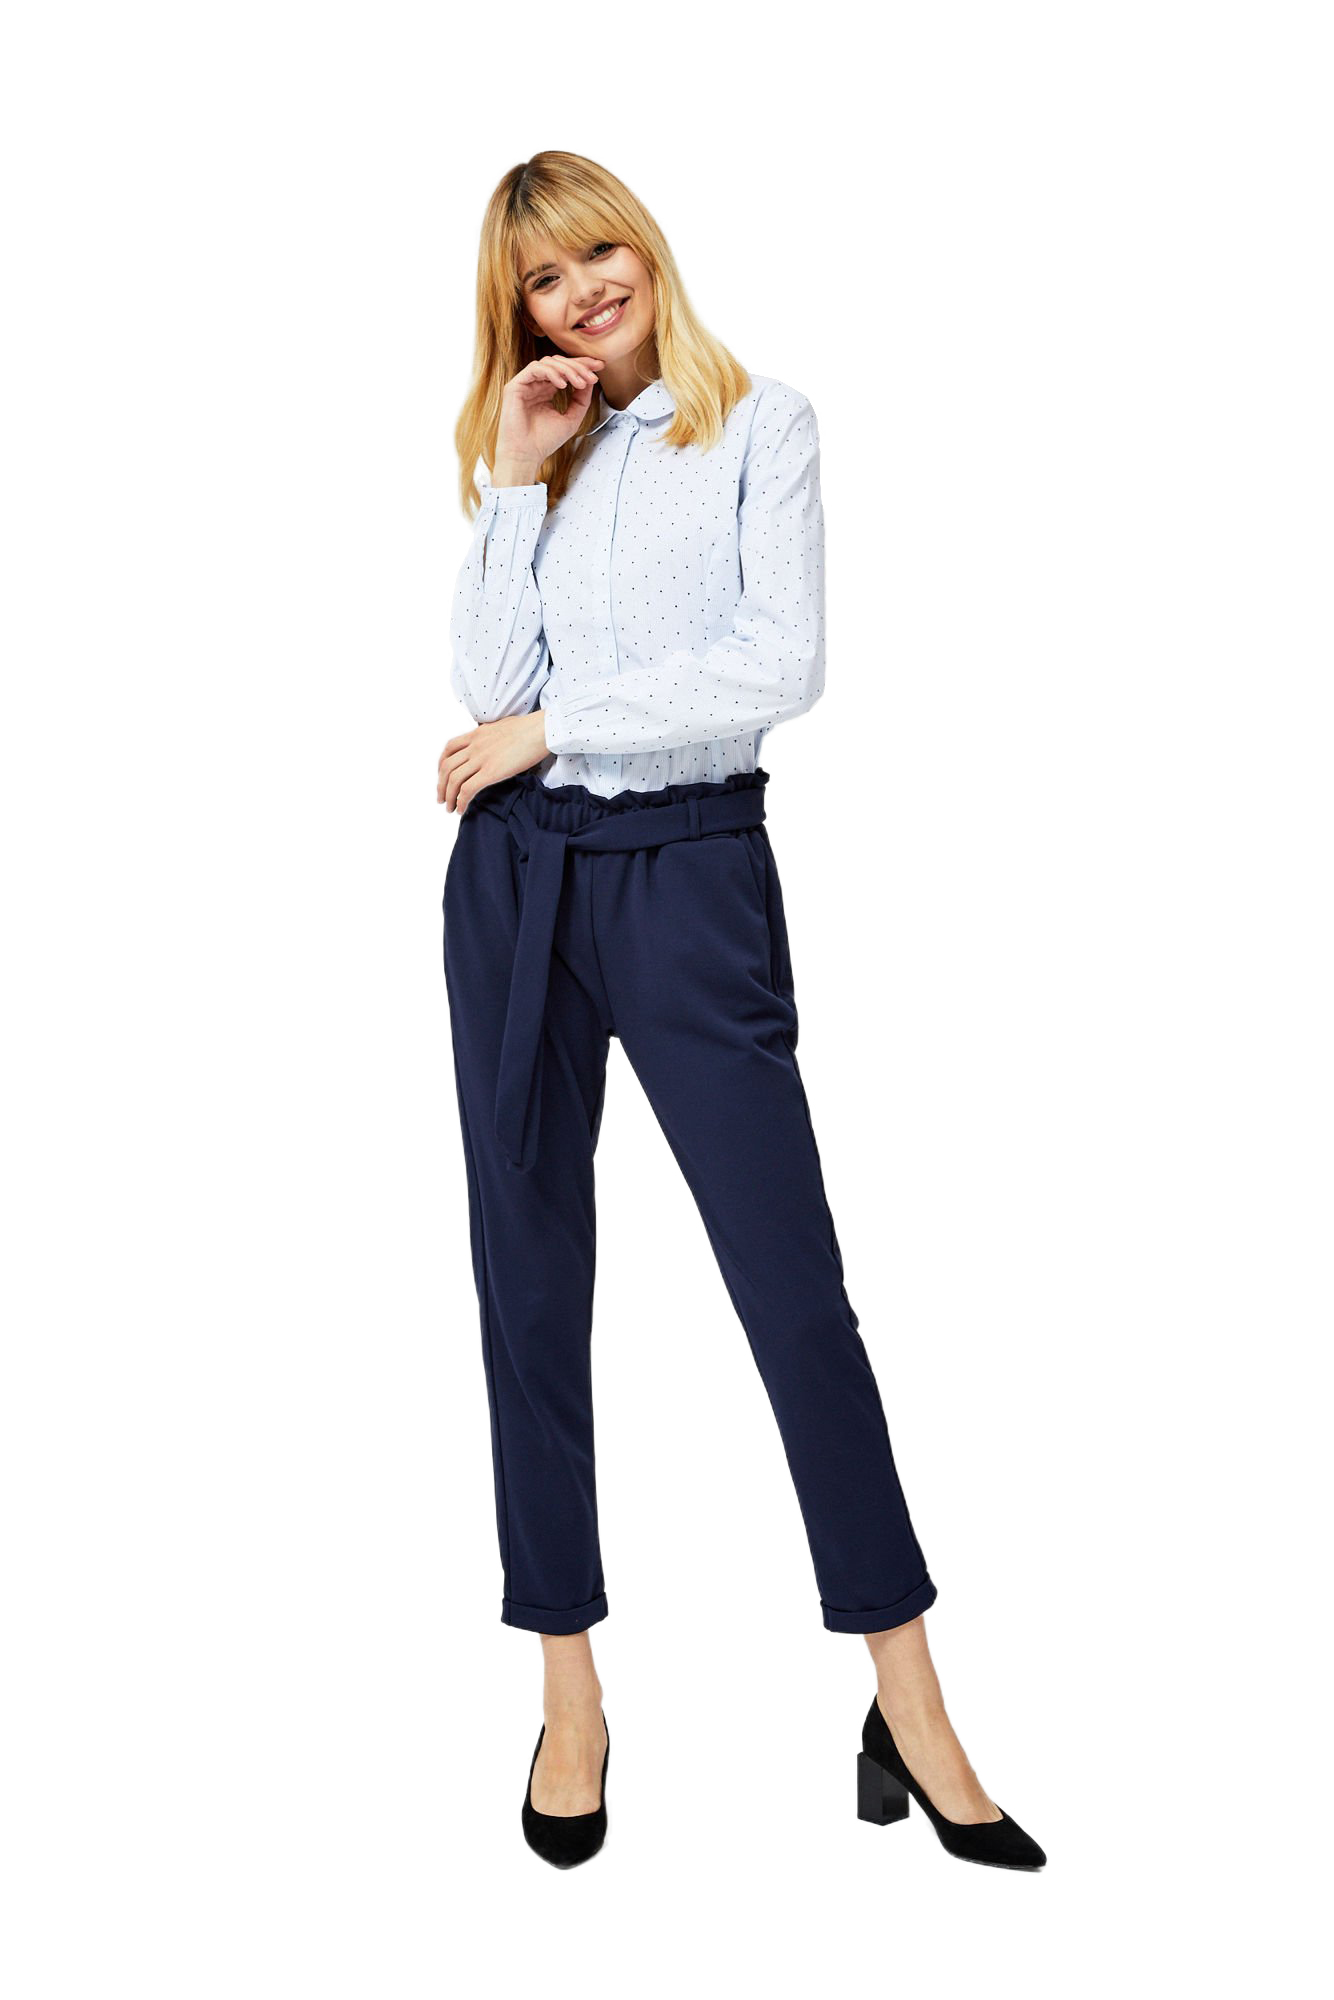 Moodo Striped Women's Shirt with a Tie and Small Triangles